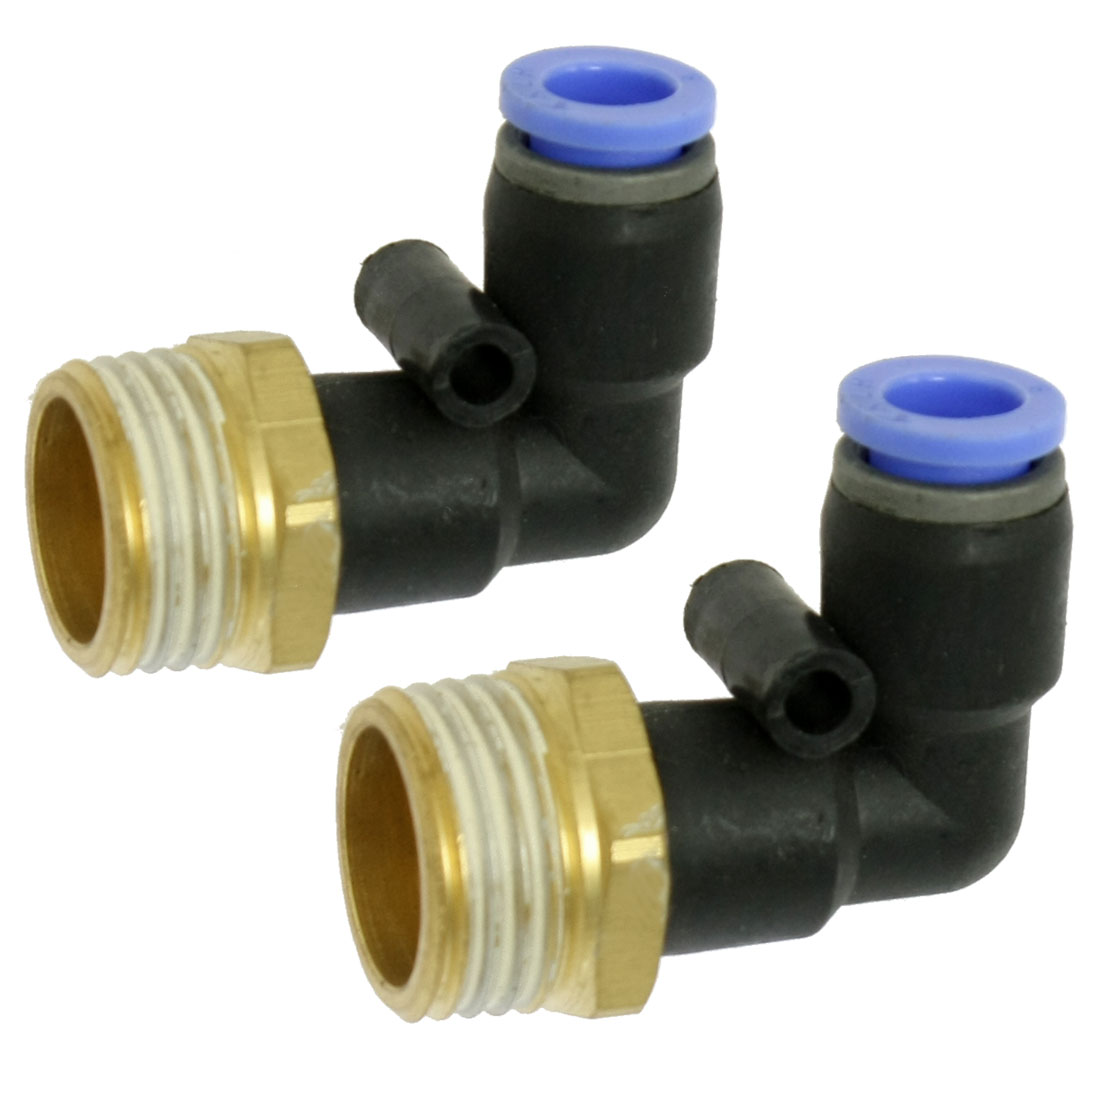 "2 Pcs Pneumatic 8mm x 1/2"" PT Elbow Type Tubing Quick Fittings"